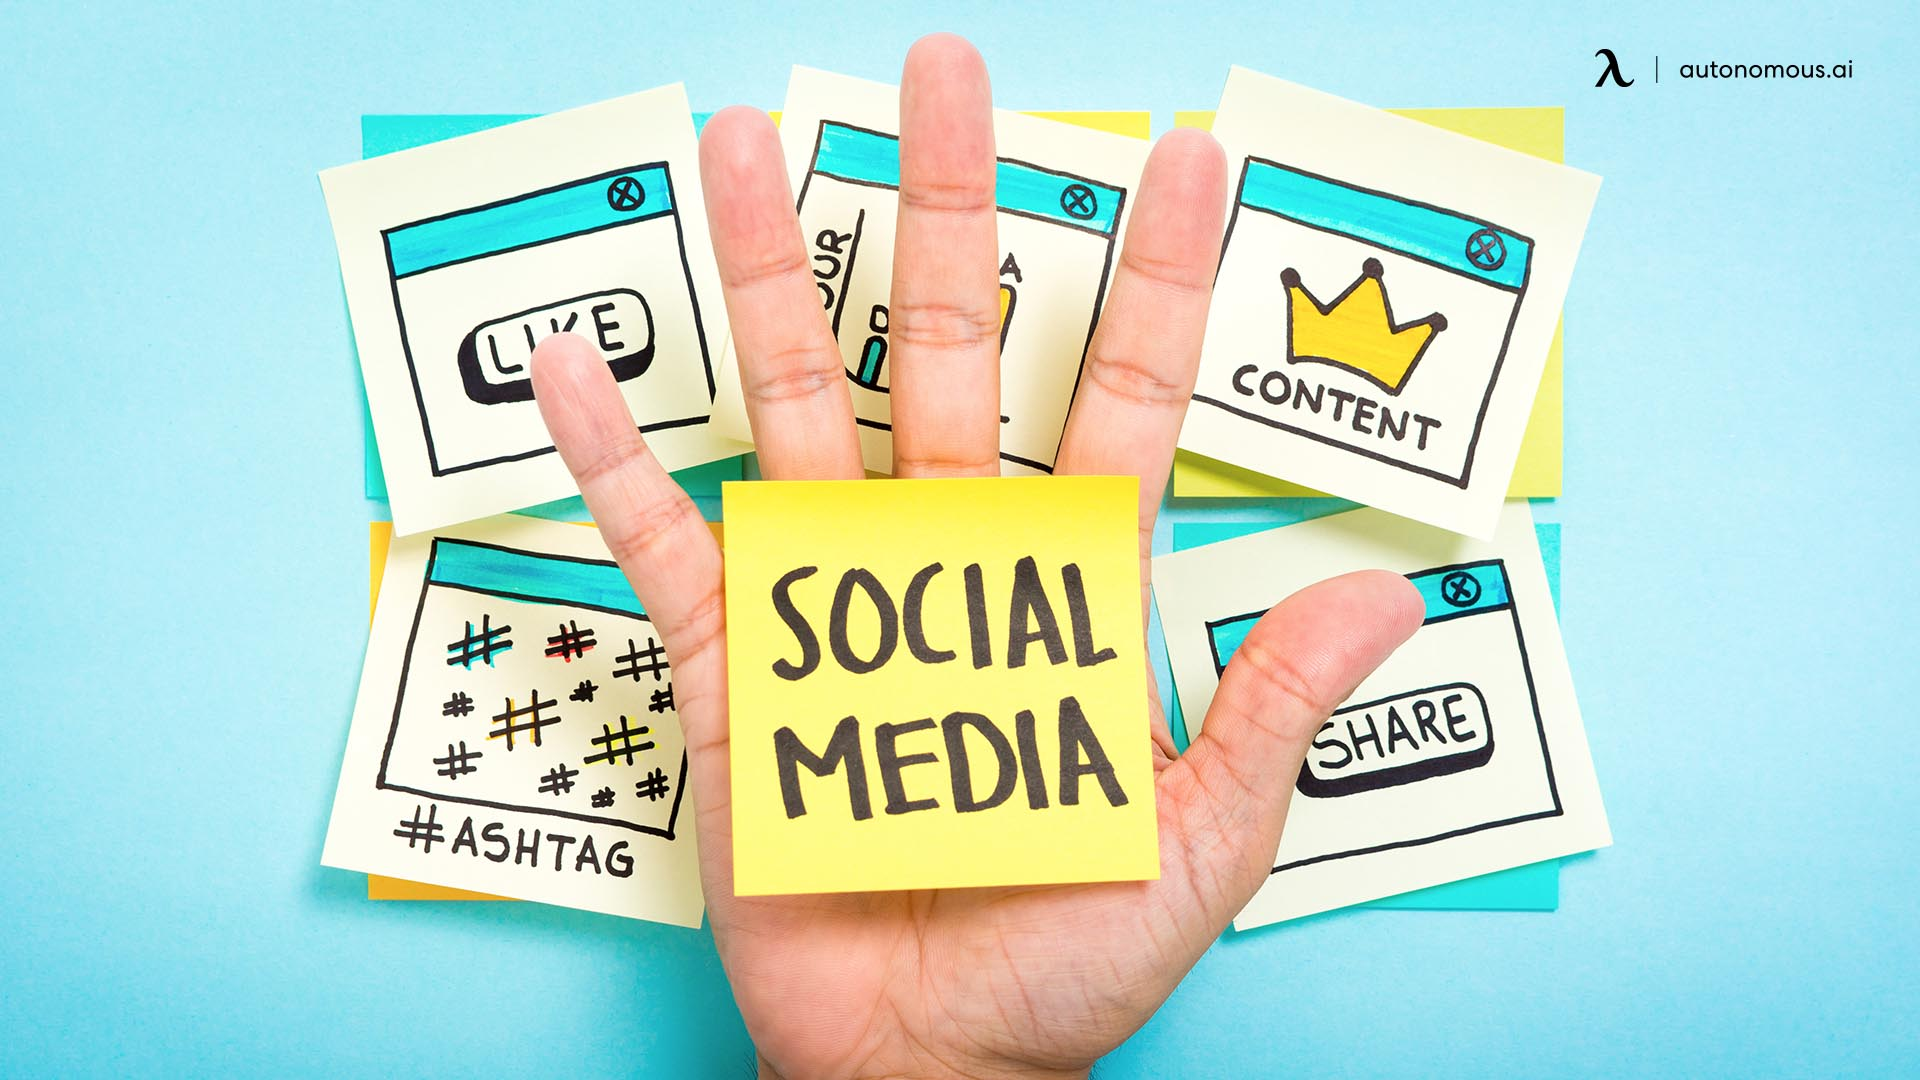 Social media coverage is often used as a means of mass media communication by companies